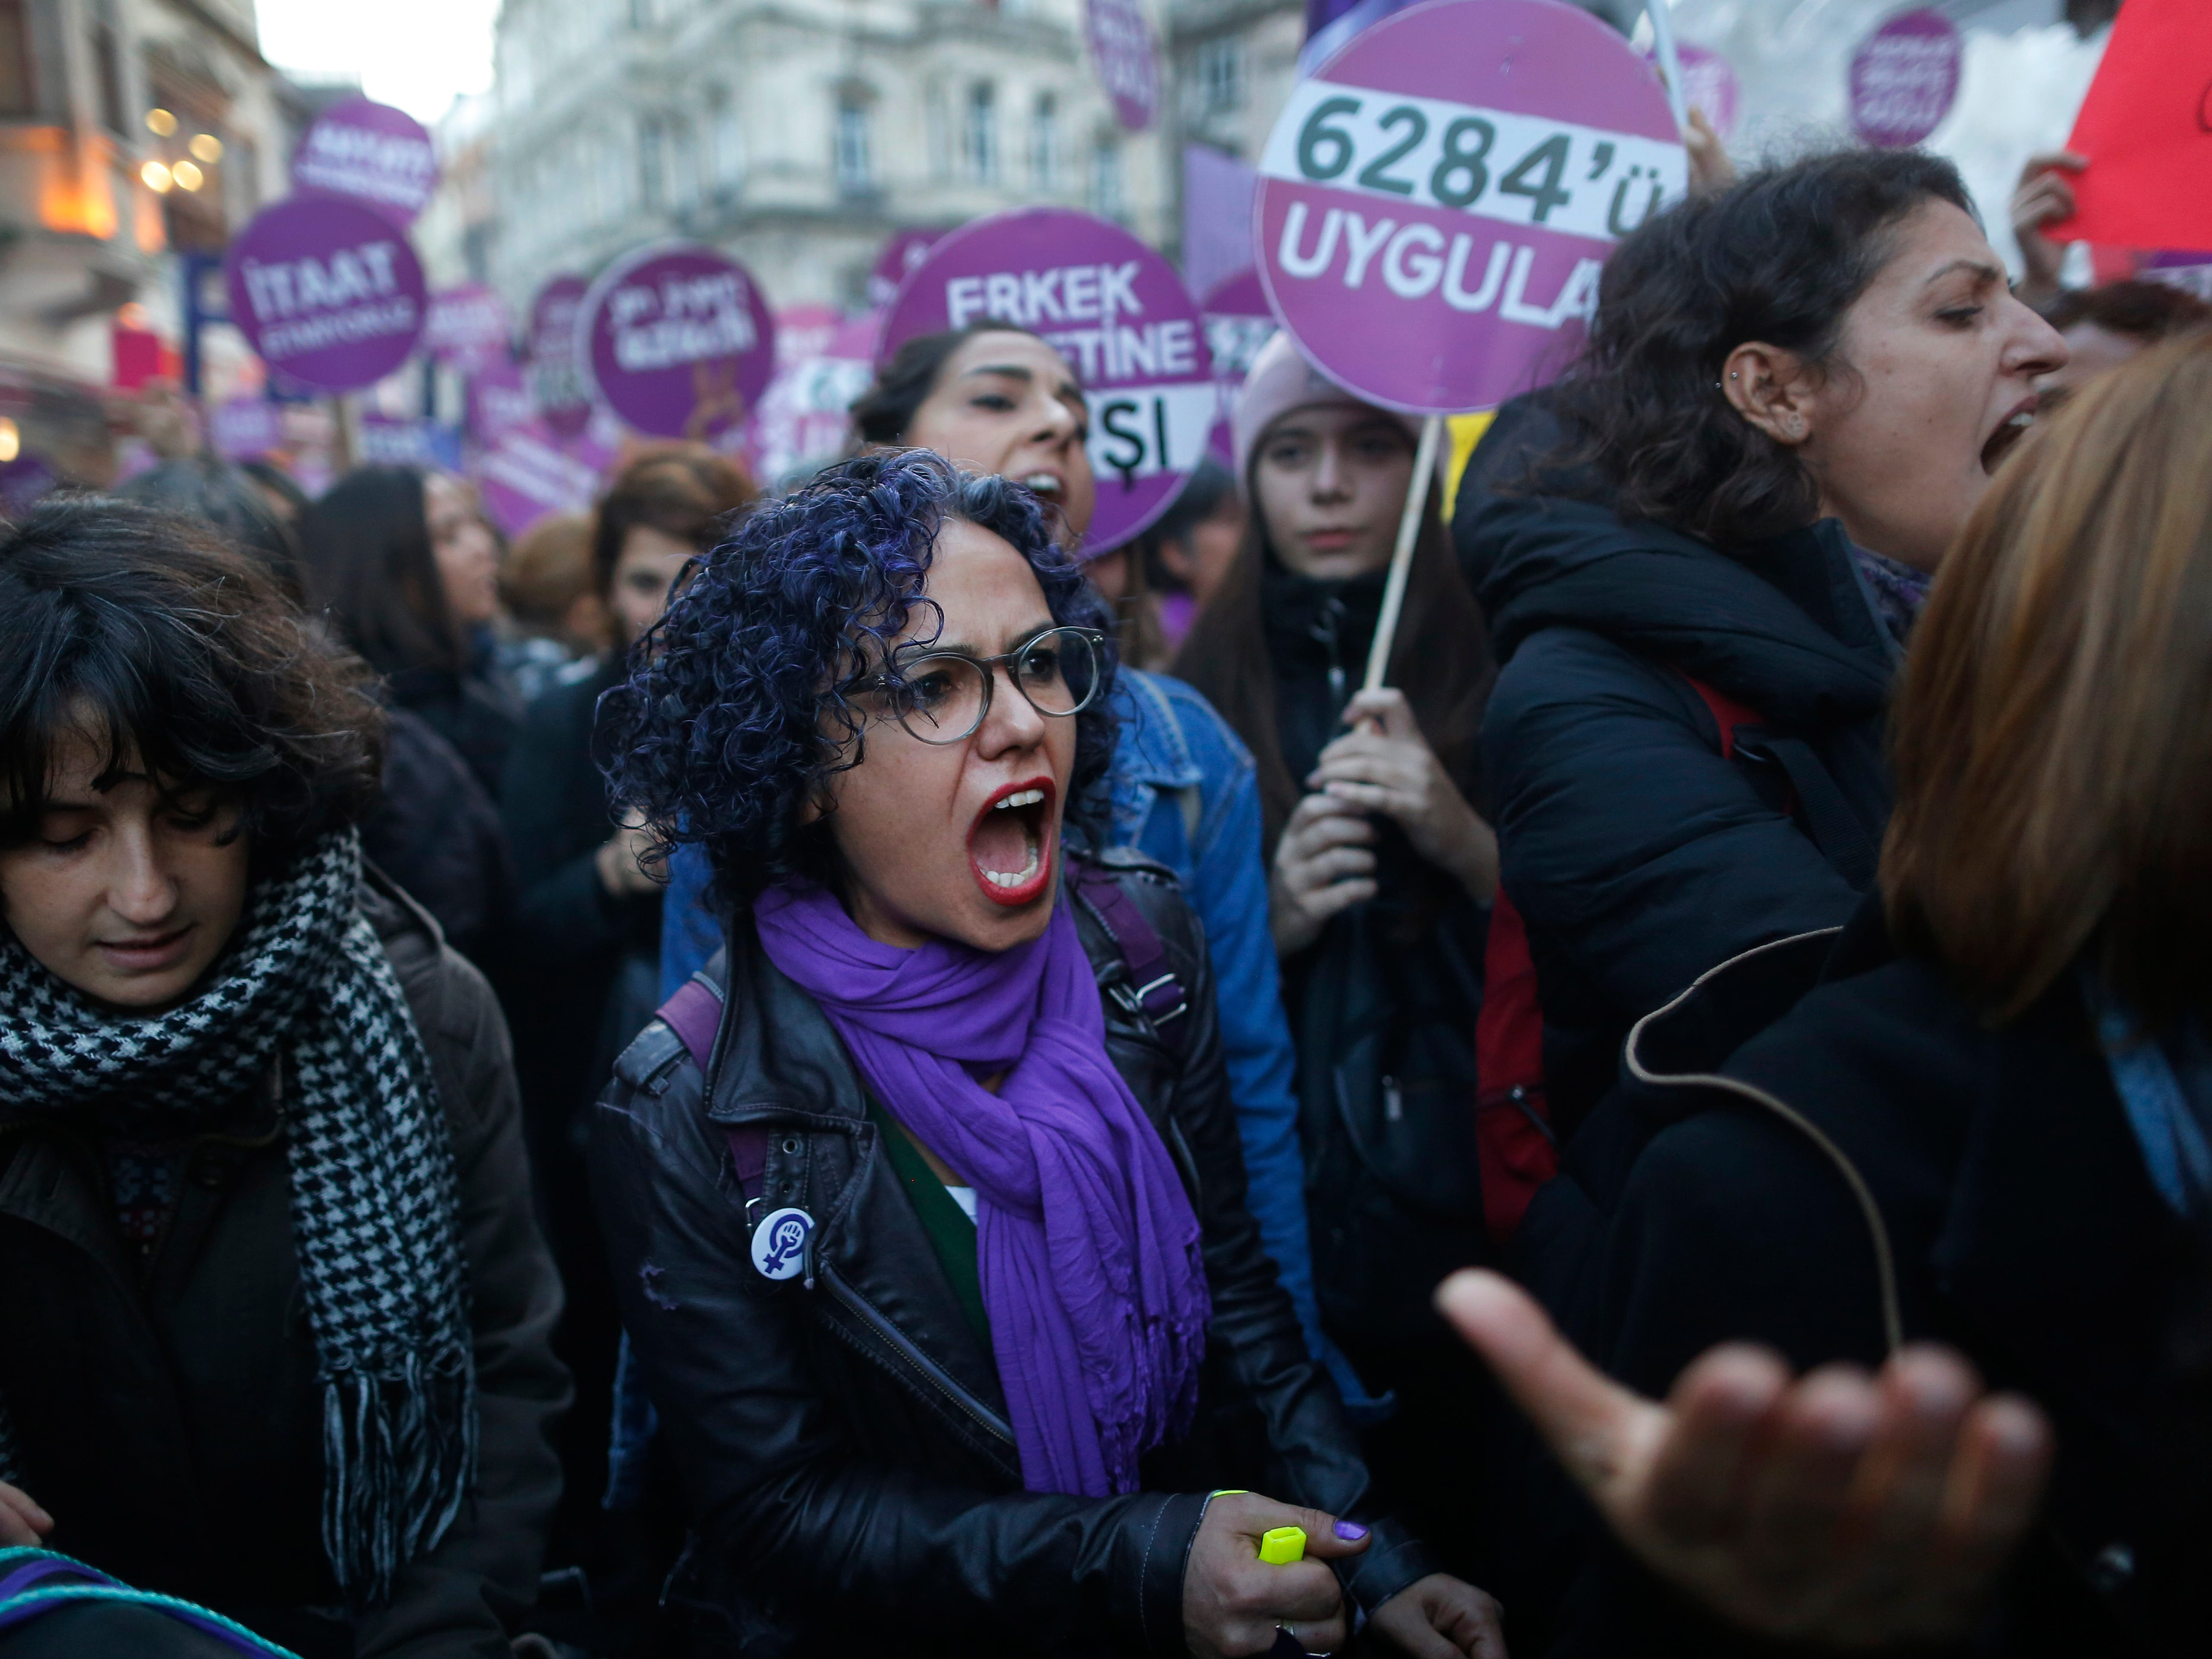 Protesters, mostly women, display placards and chant slogans during a rally in central Istanbul, Sunday, Nov. 25, 2018, to mark the United Nations' International Day for the Elimination of Violence Against Women.